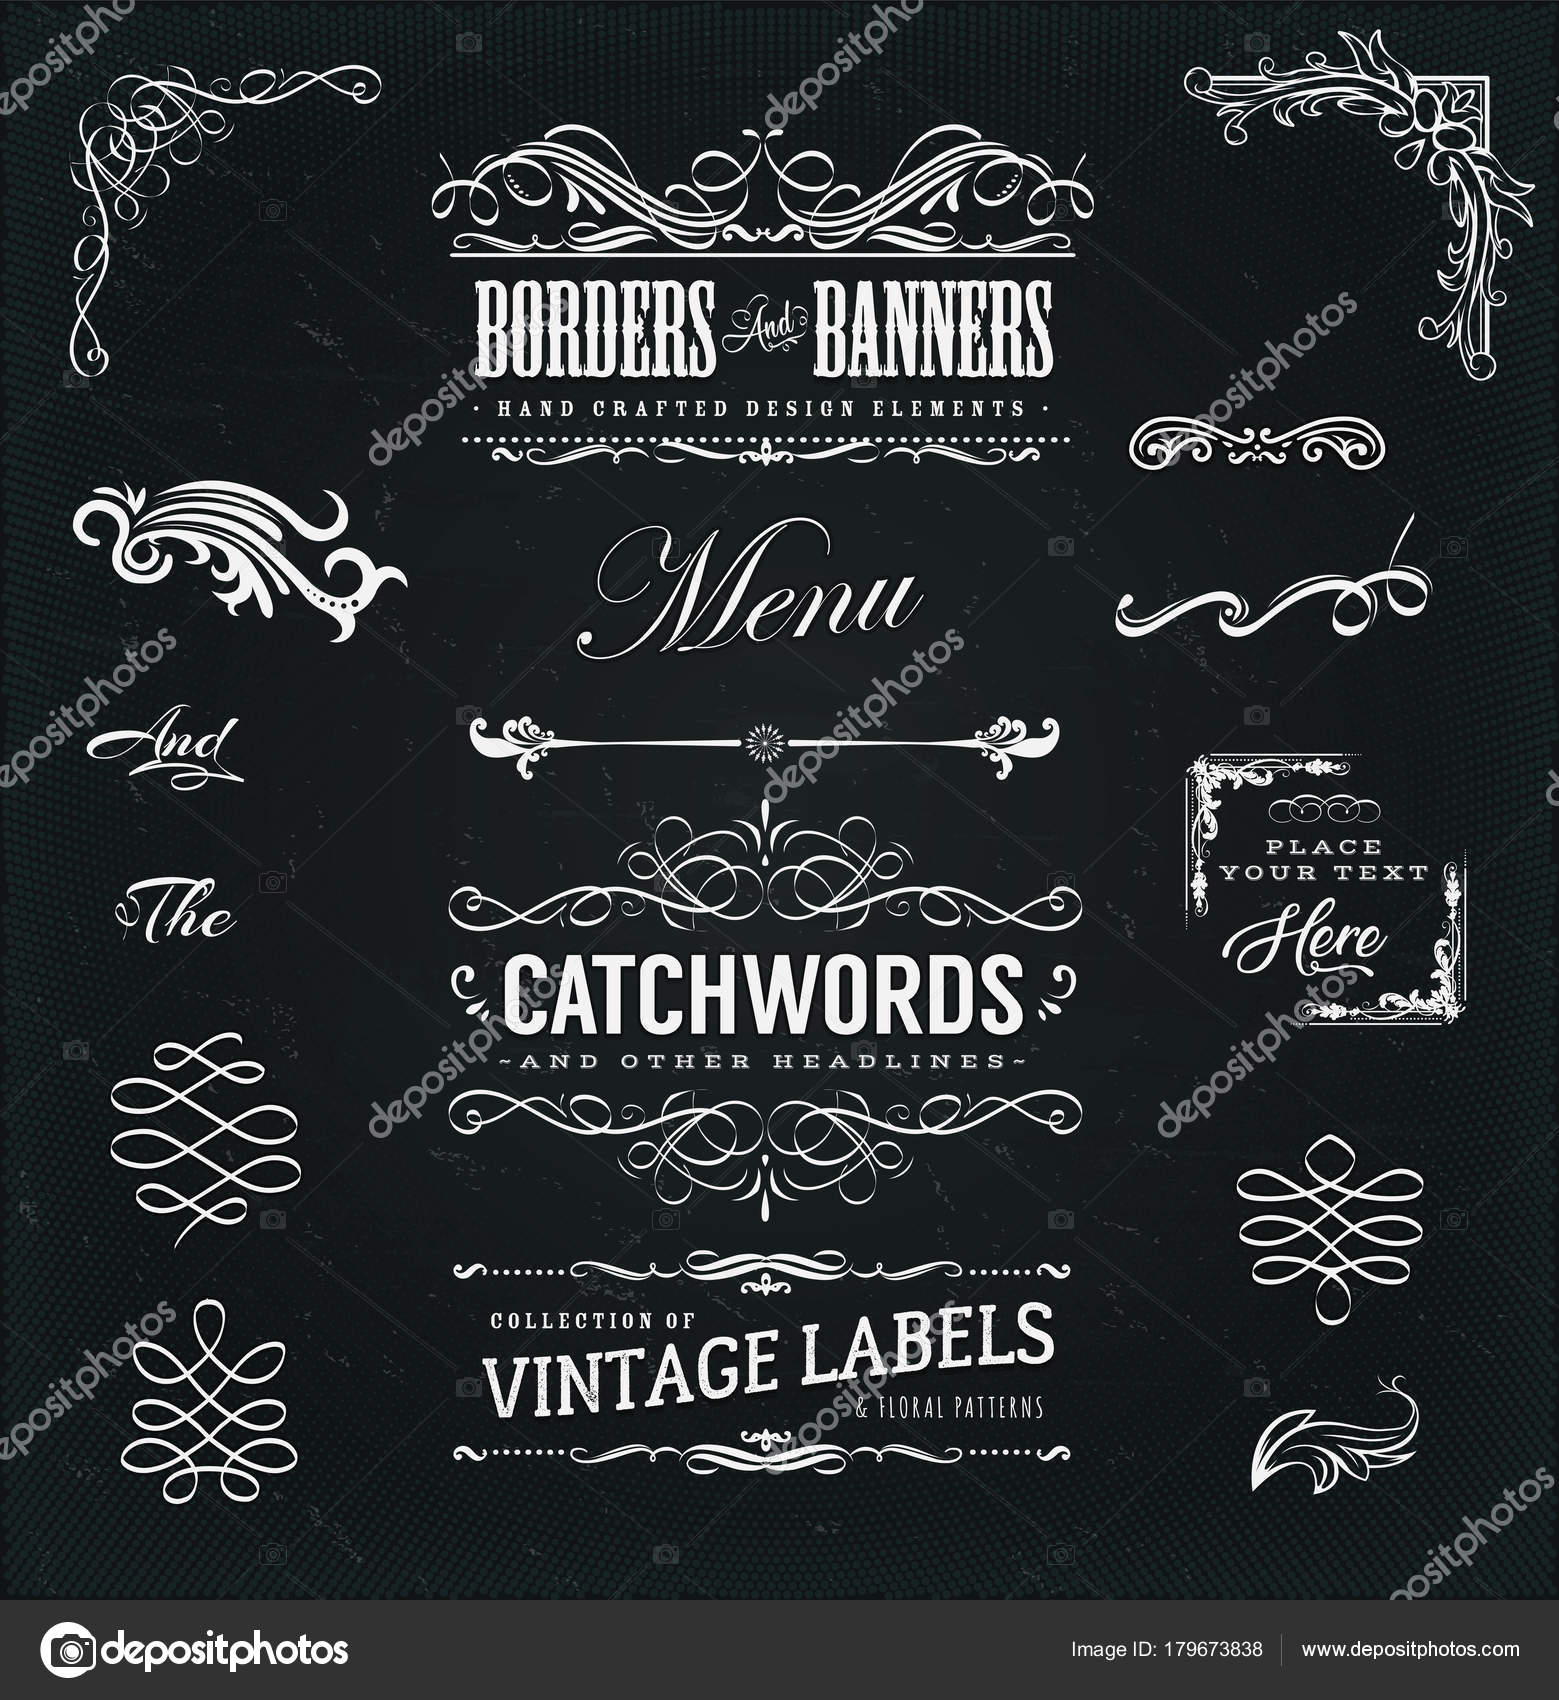 Vintage Corners And Borders Elements, With Calligraphic Floral Shapes,  Ampersand, Patterns And Old Fashioned Frame Design On Chalkboard U2014 Vector  By Benchyb